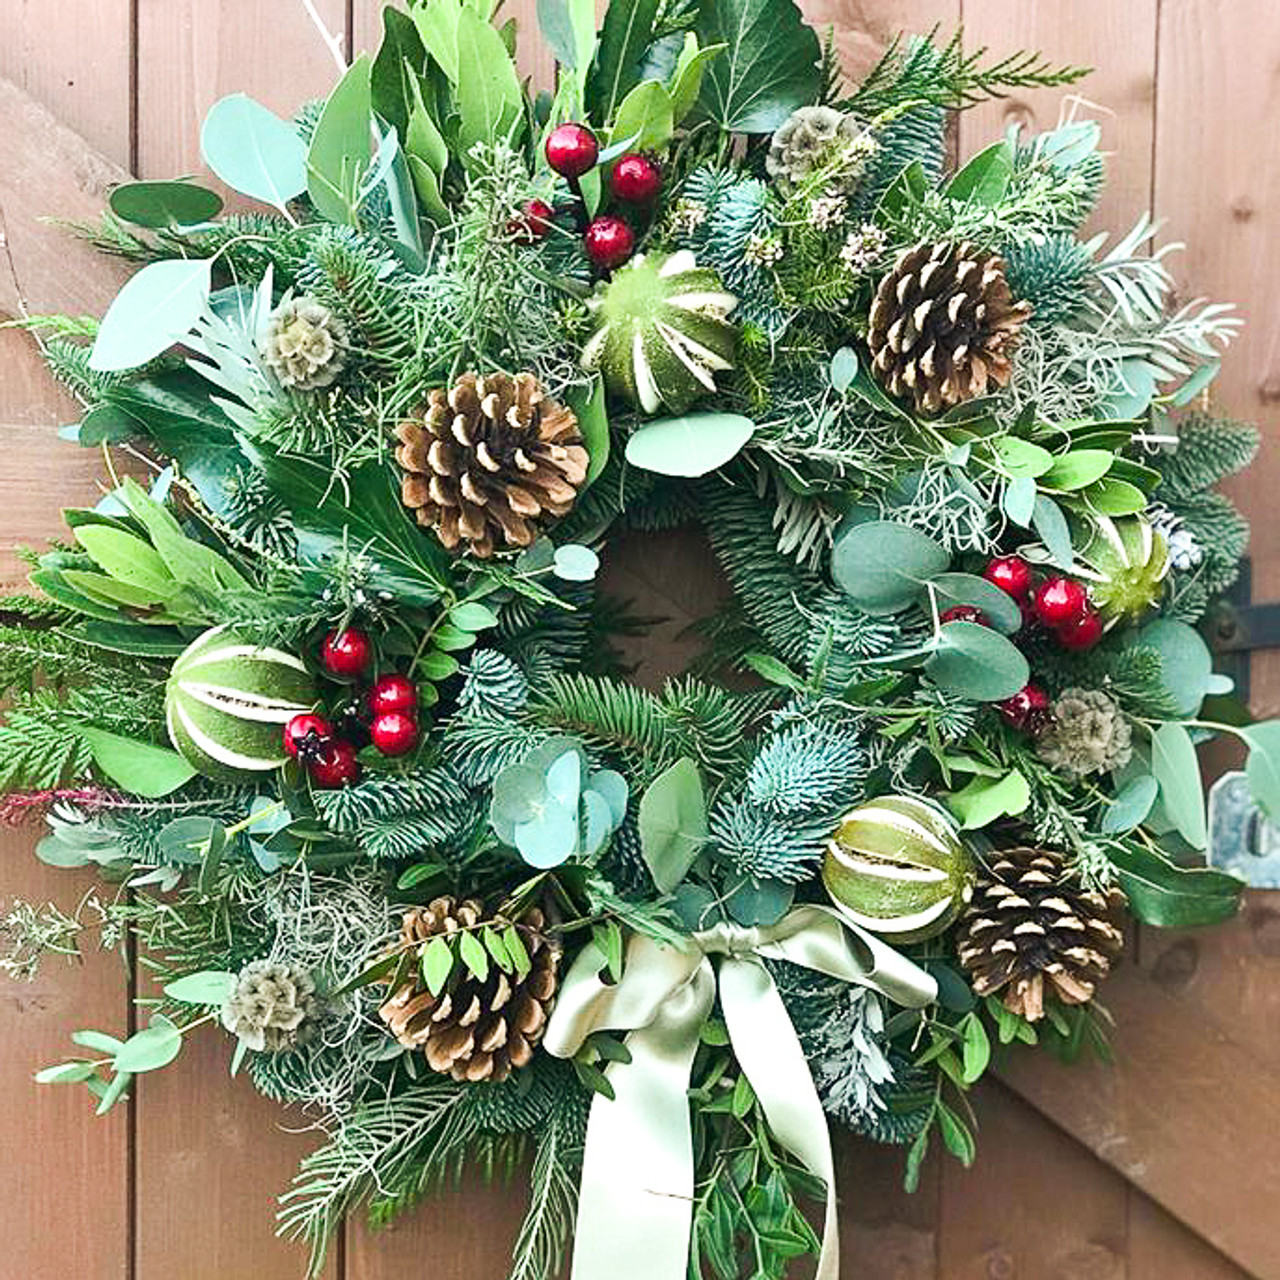 Fresh Christmas Wreath With Bramble Cottage Flowers Christmas Workshop Tuesday 3rd December 2019 Evening